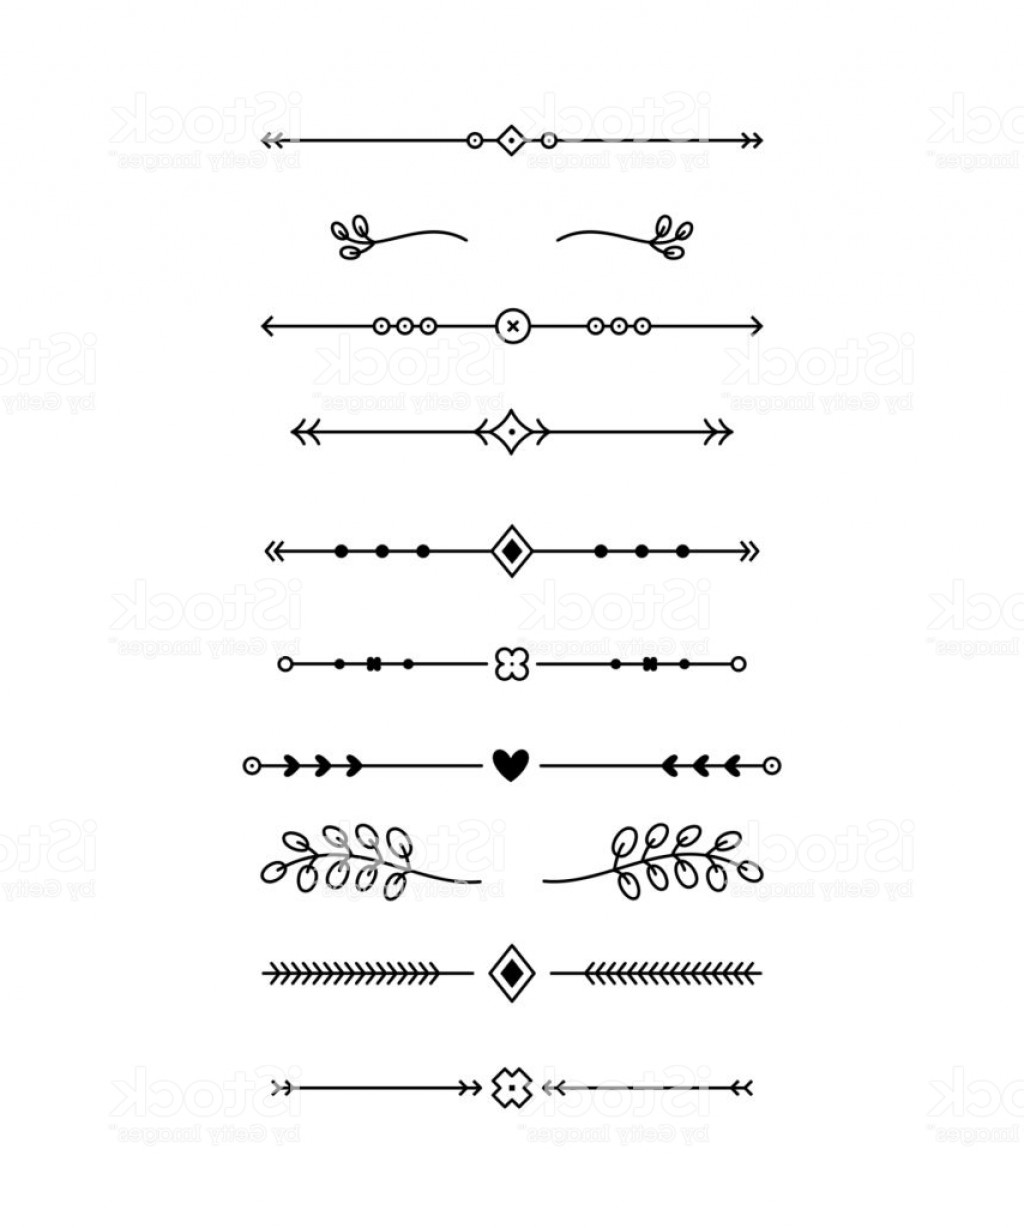 Decorative Text Vector: Geometric And Floral Horizontal Decorative Text Dividers Vector Set Gm